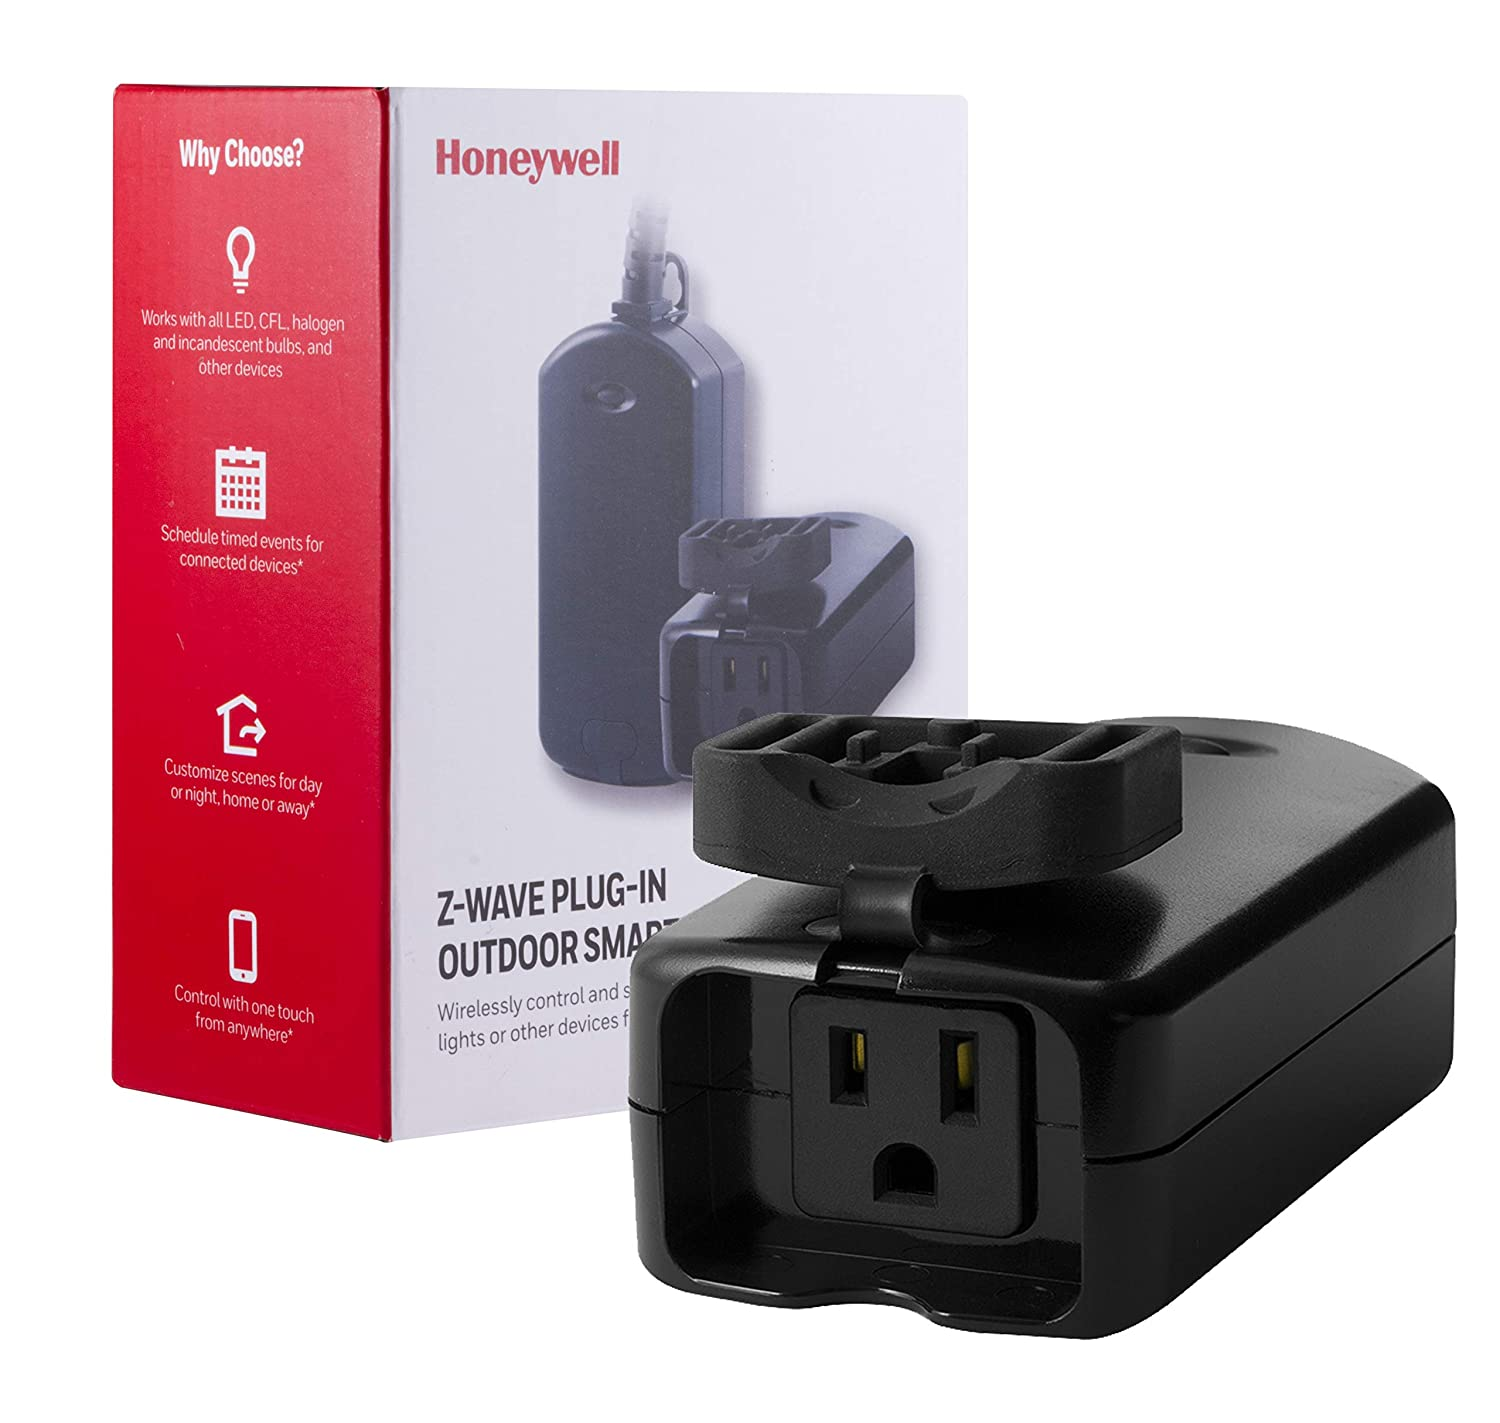 Honeywell Z-Wave Plus Outdoor On/Off Light and Appliance Switch, Single Grounded Outlet Plug-In   1 Weather Resistant Outlet Cover   ZWave Hub Required - SmartThings, Wink, and Alexa Compatible, 39346